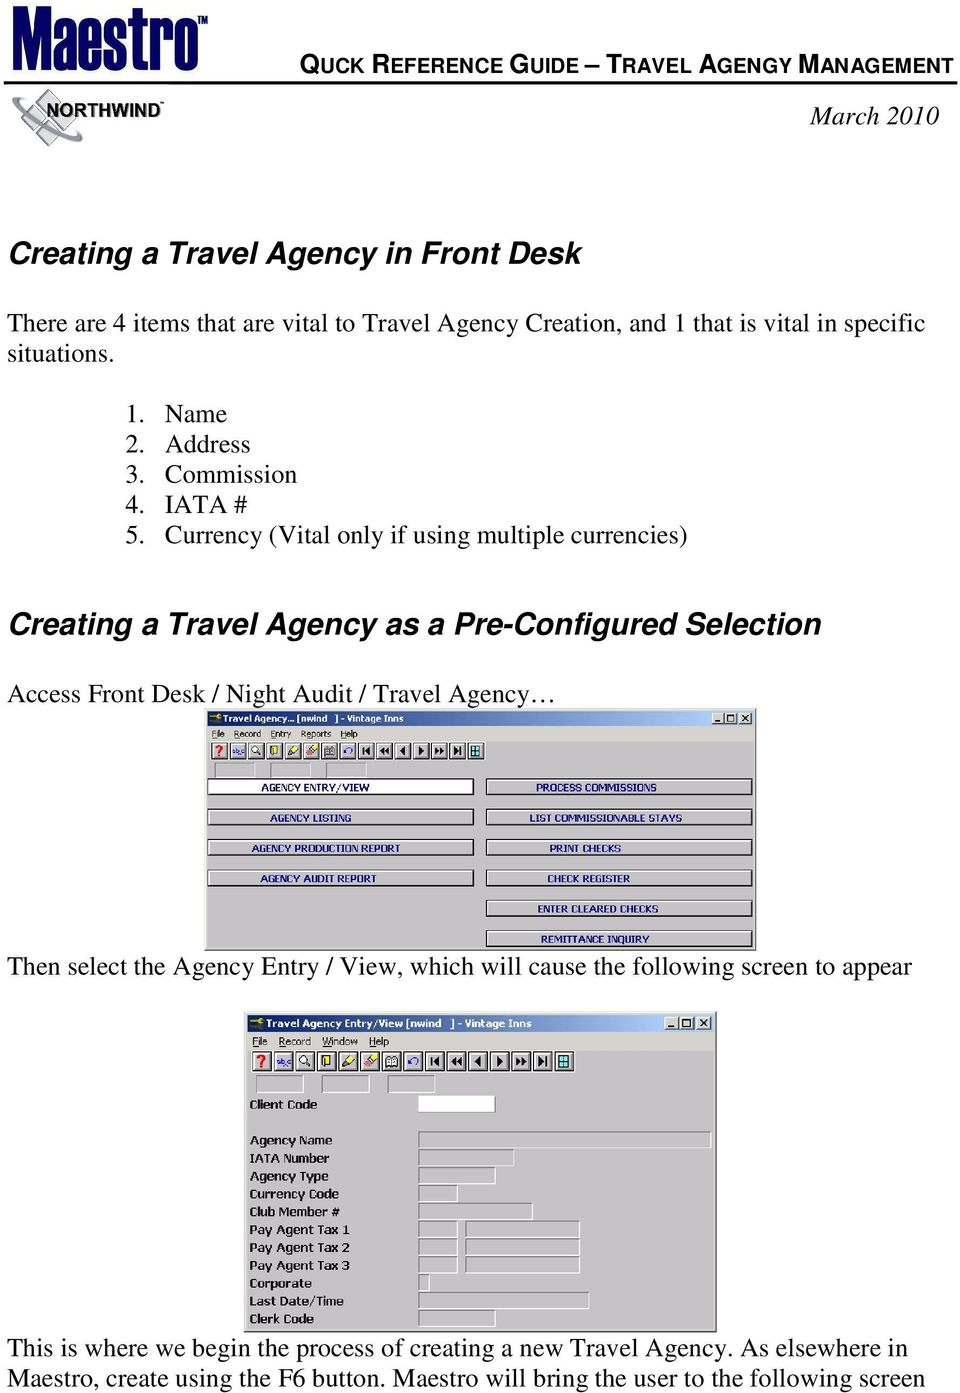 Configuring Maestro for Travel Agency Commission Processing